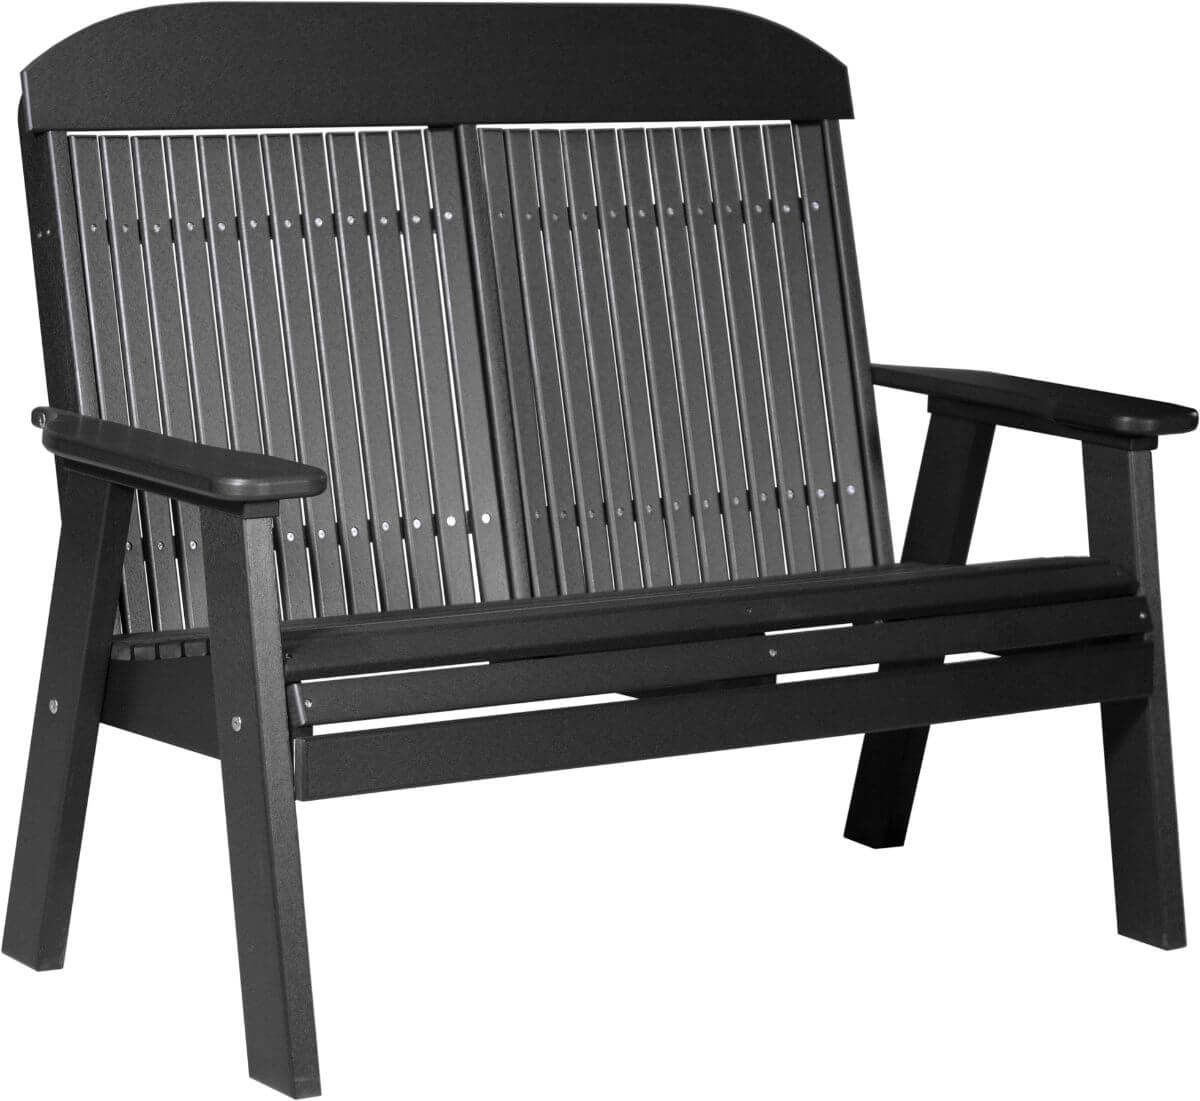 Black Stockton Patio Bench